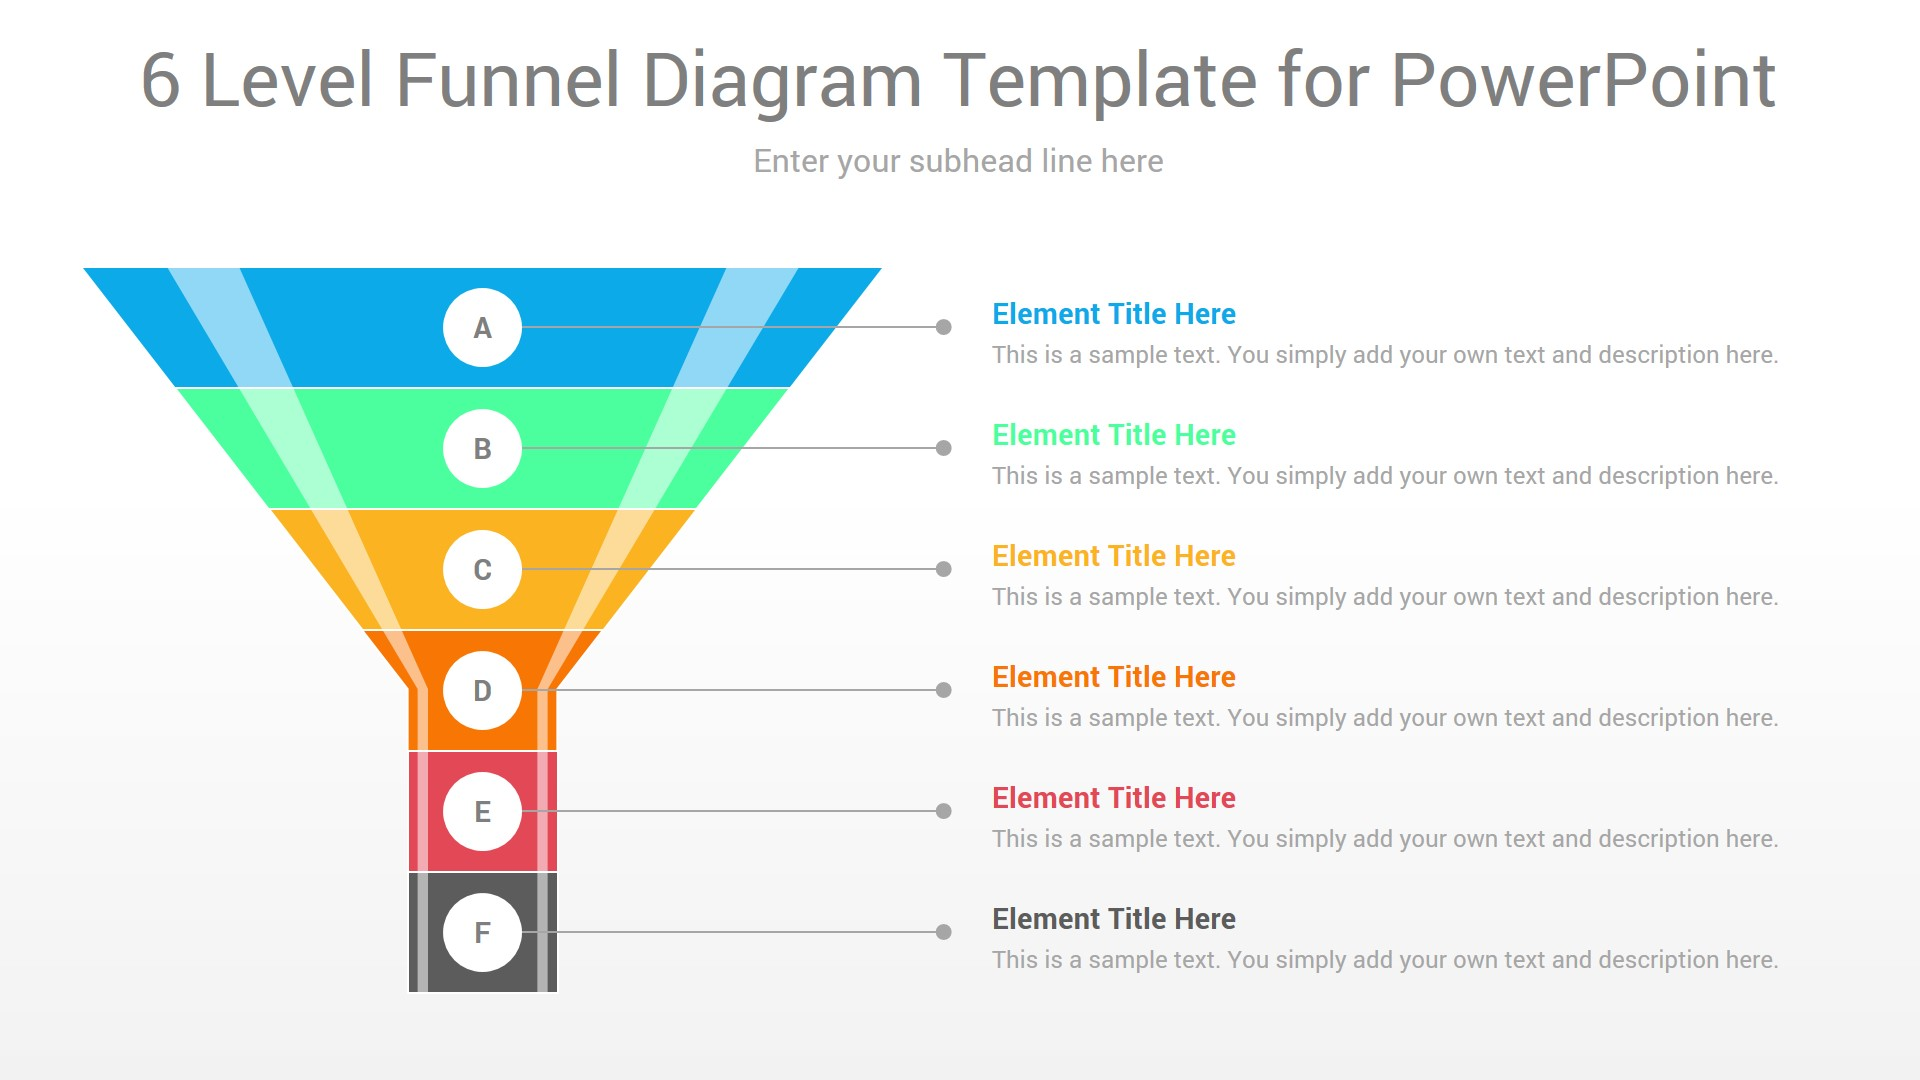 6 Level Funnel Diagram Template for PowerPoint